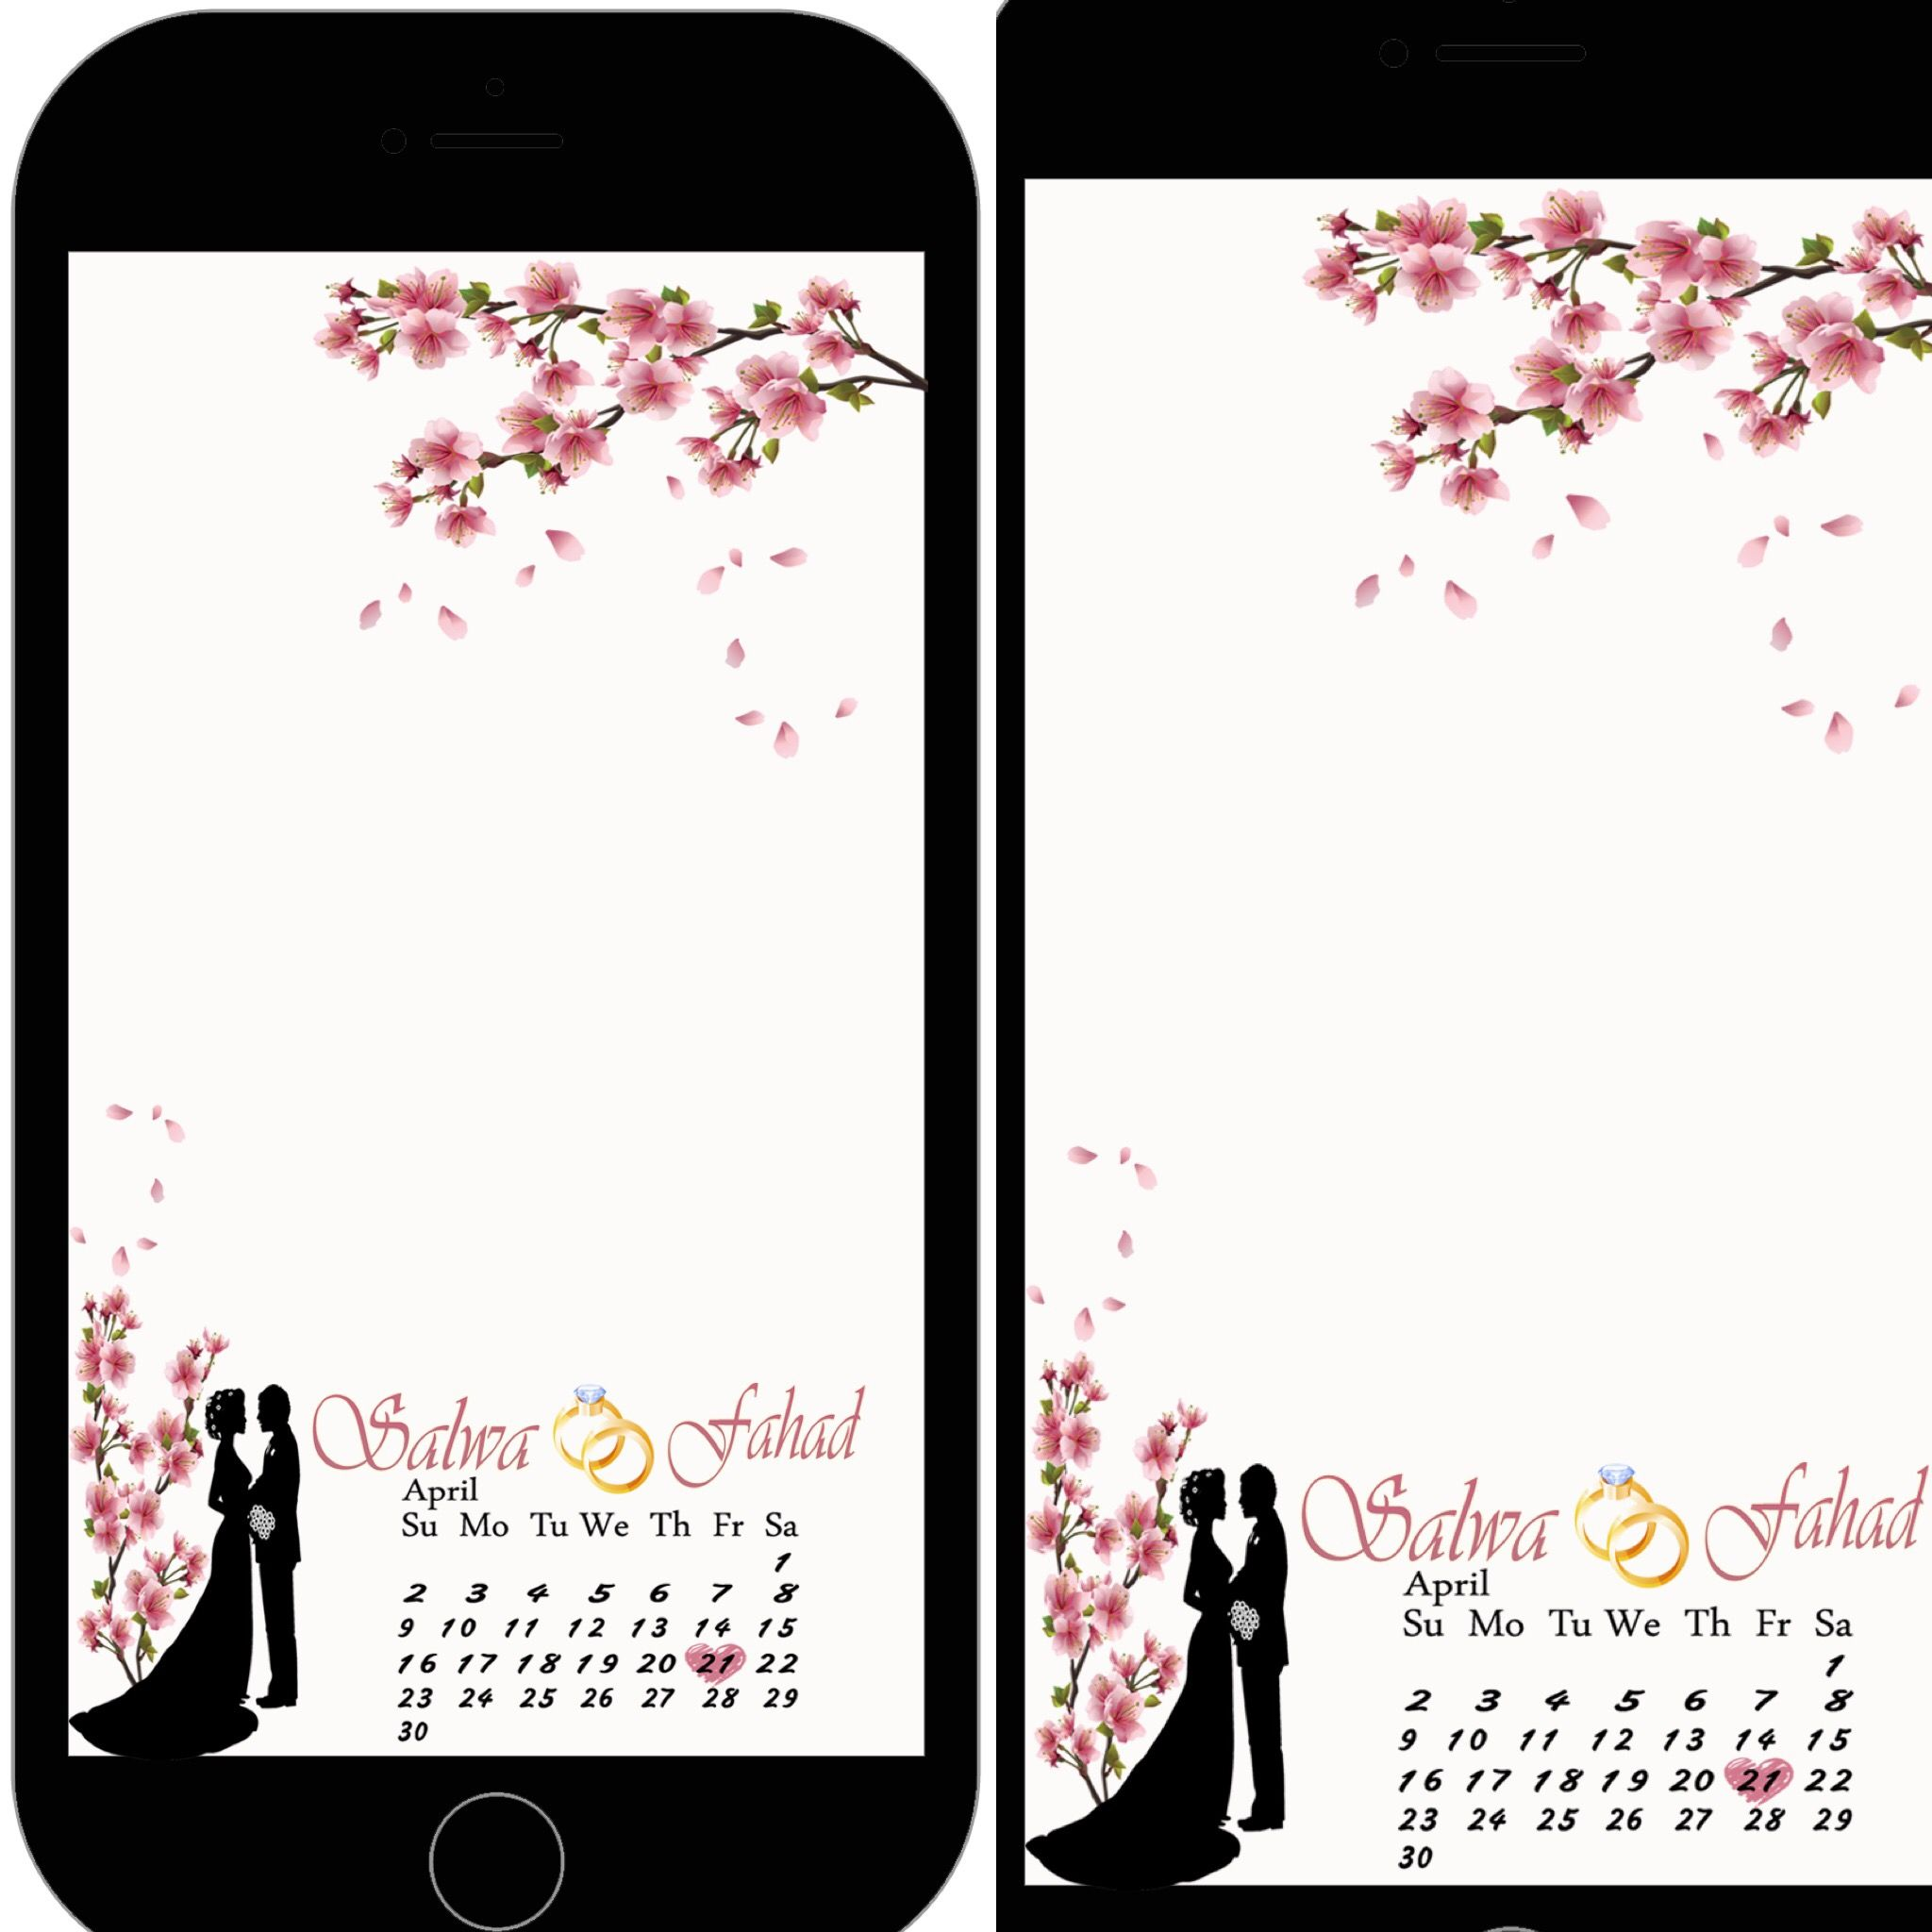 Filter Snapchat Geofilter فلتر سناب Wedding فلاتر زواج Creative Instagram Photo Ideas Snapchat Geofilters Wallpaper Wedding